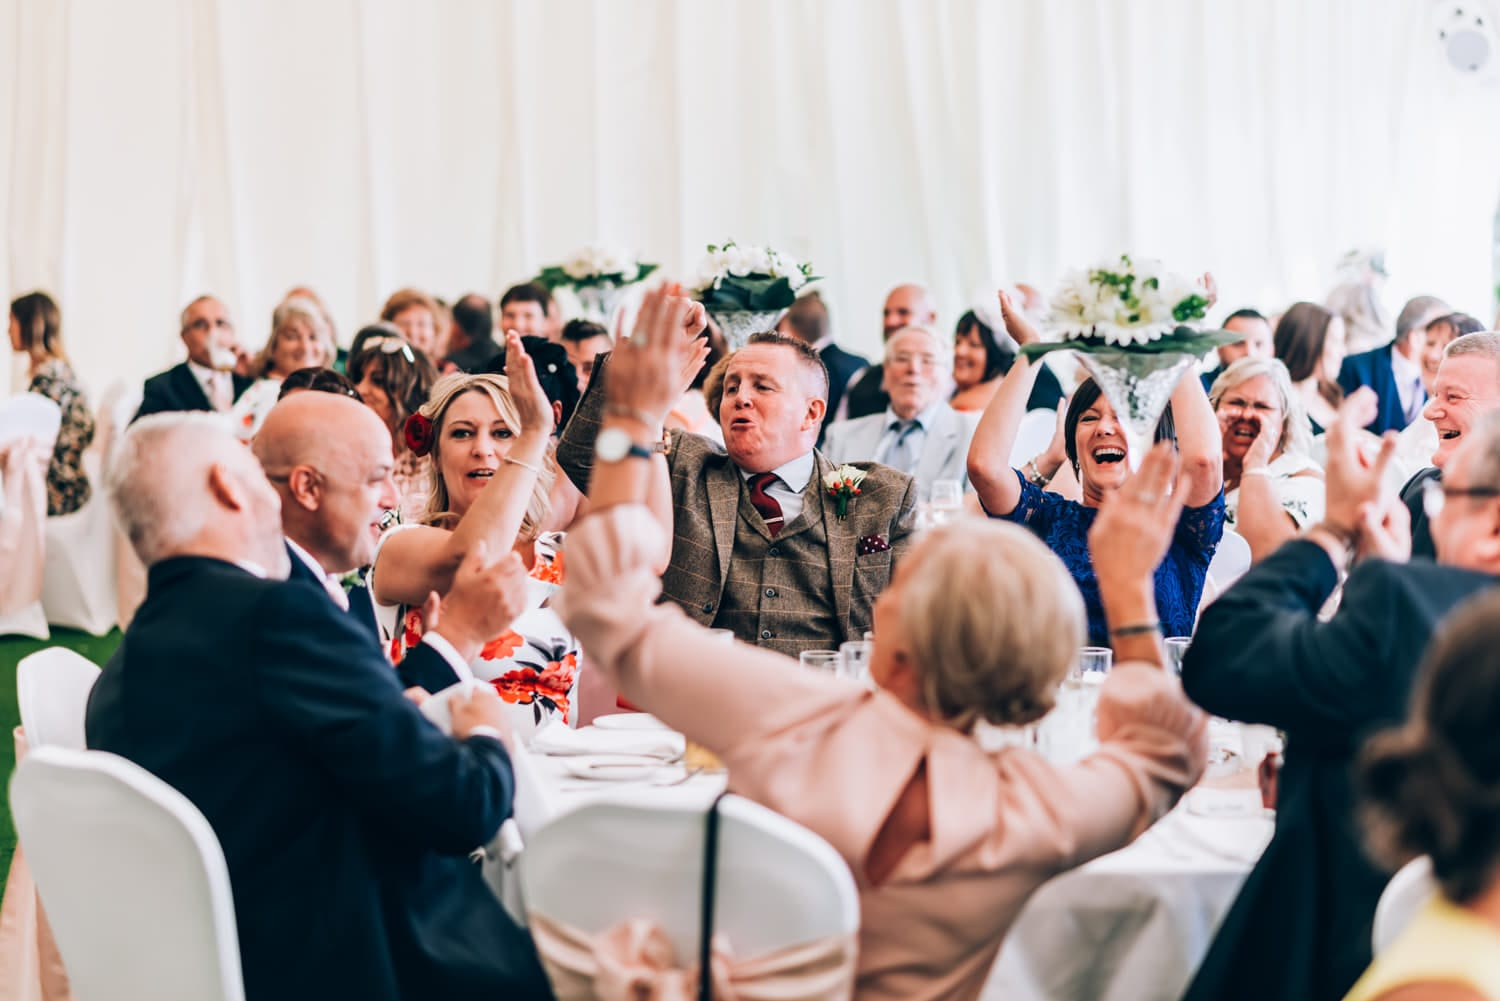 Cottrell Park Golf Resort weddings - crowd clapping and happy